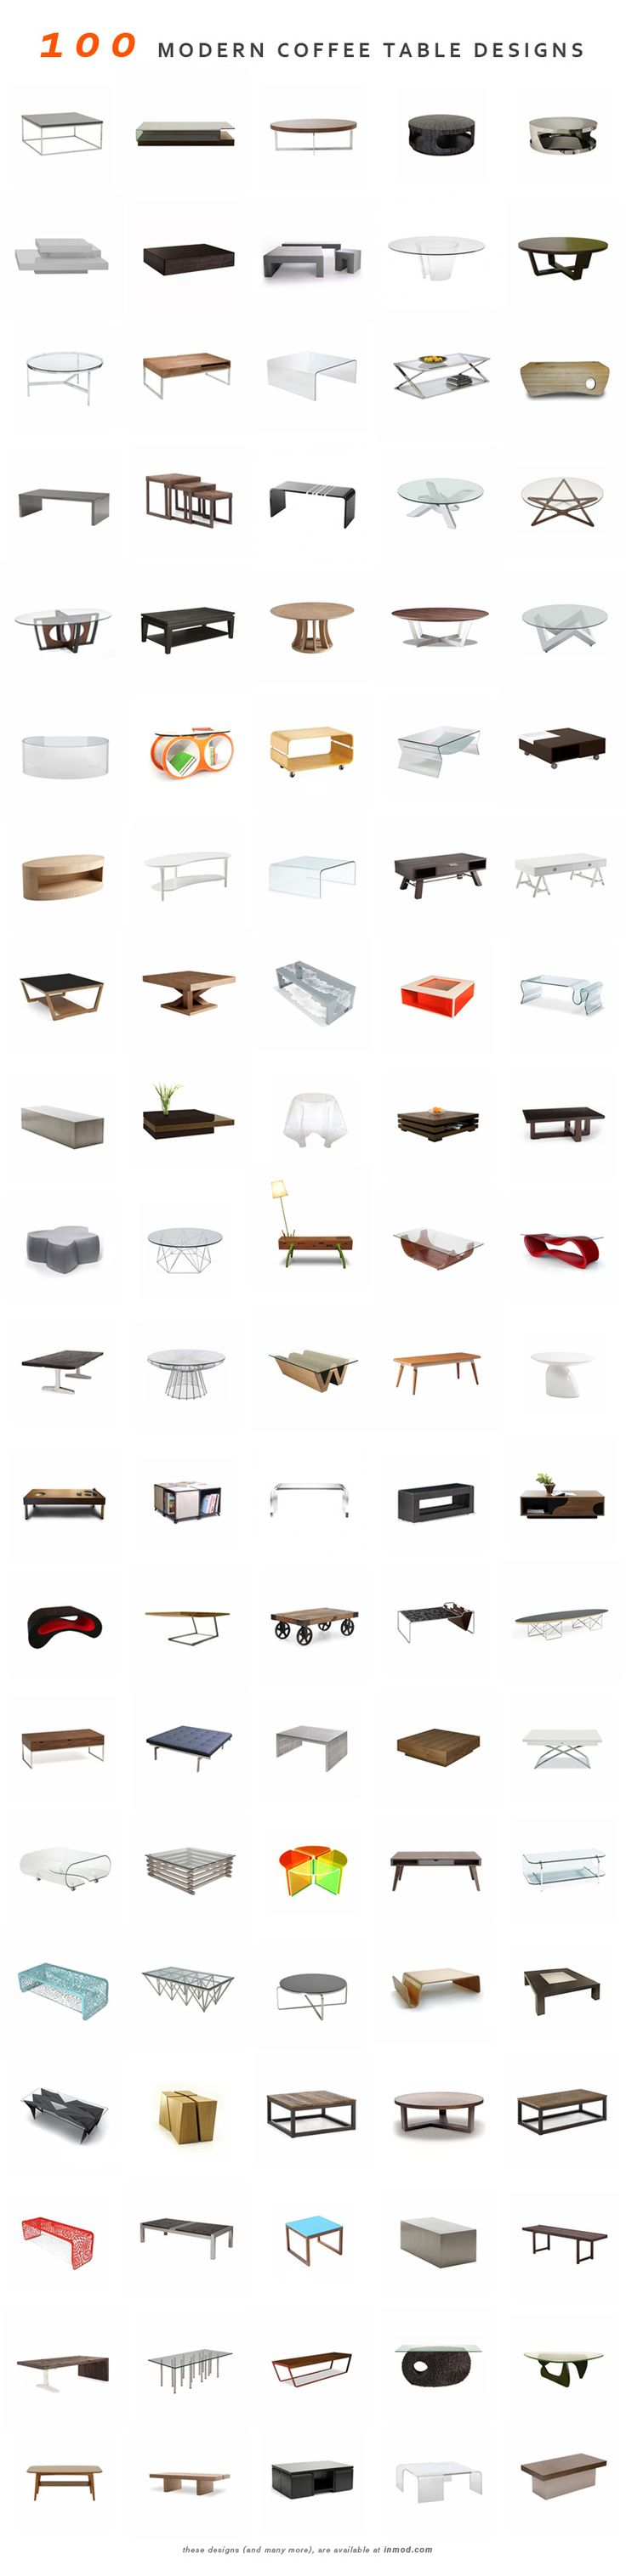 105 best Furniture&Deco images on Pinterest